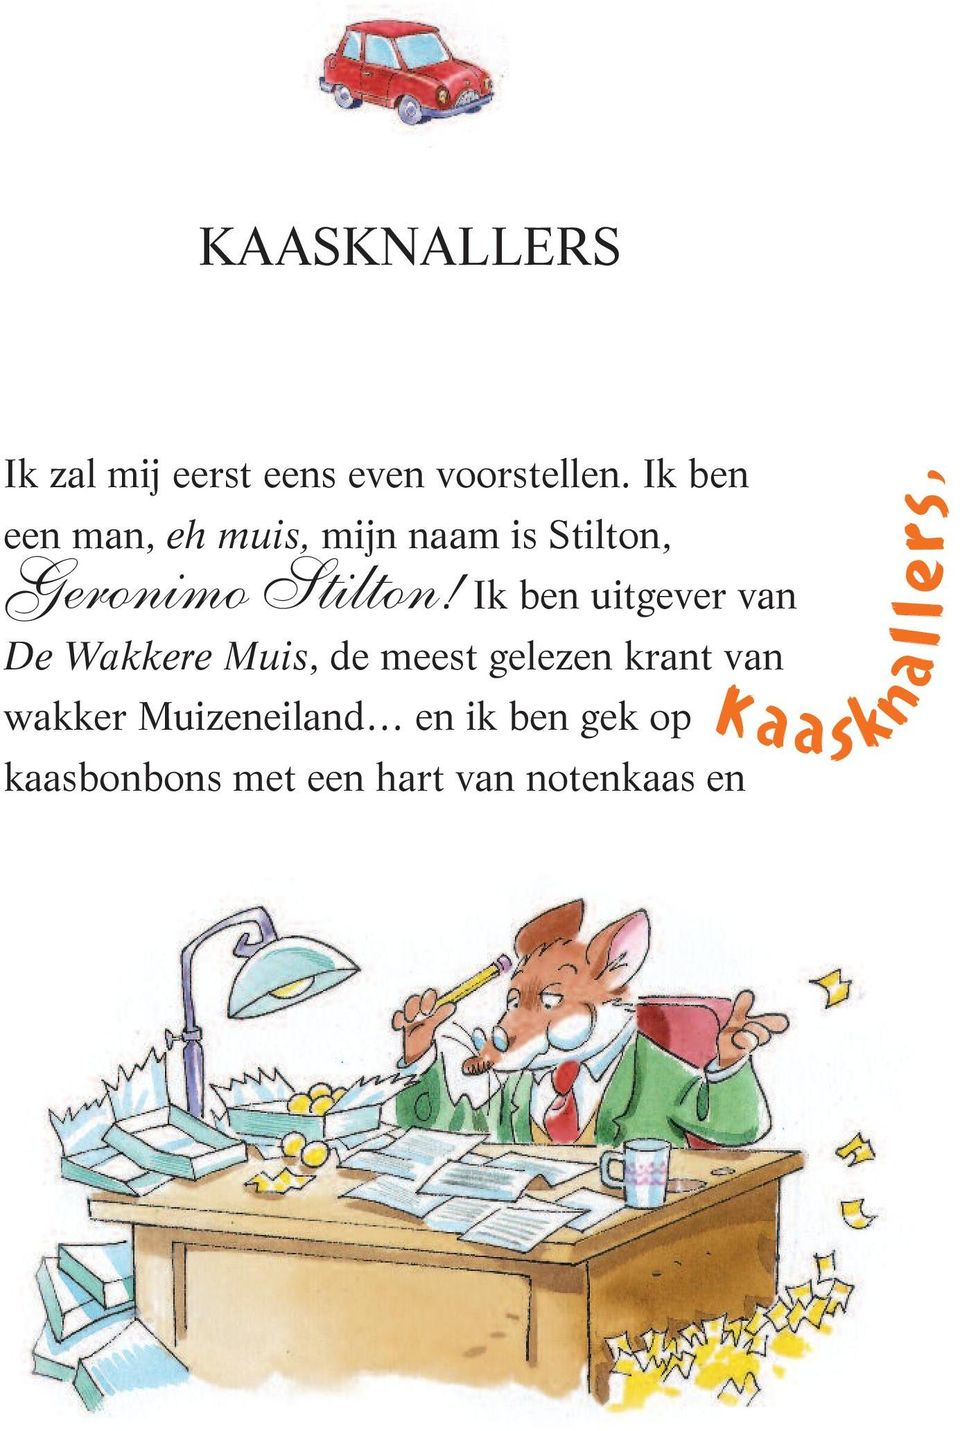 Geronimo Stilton!